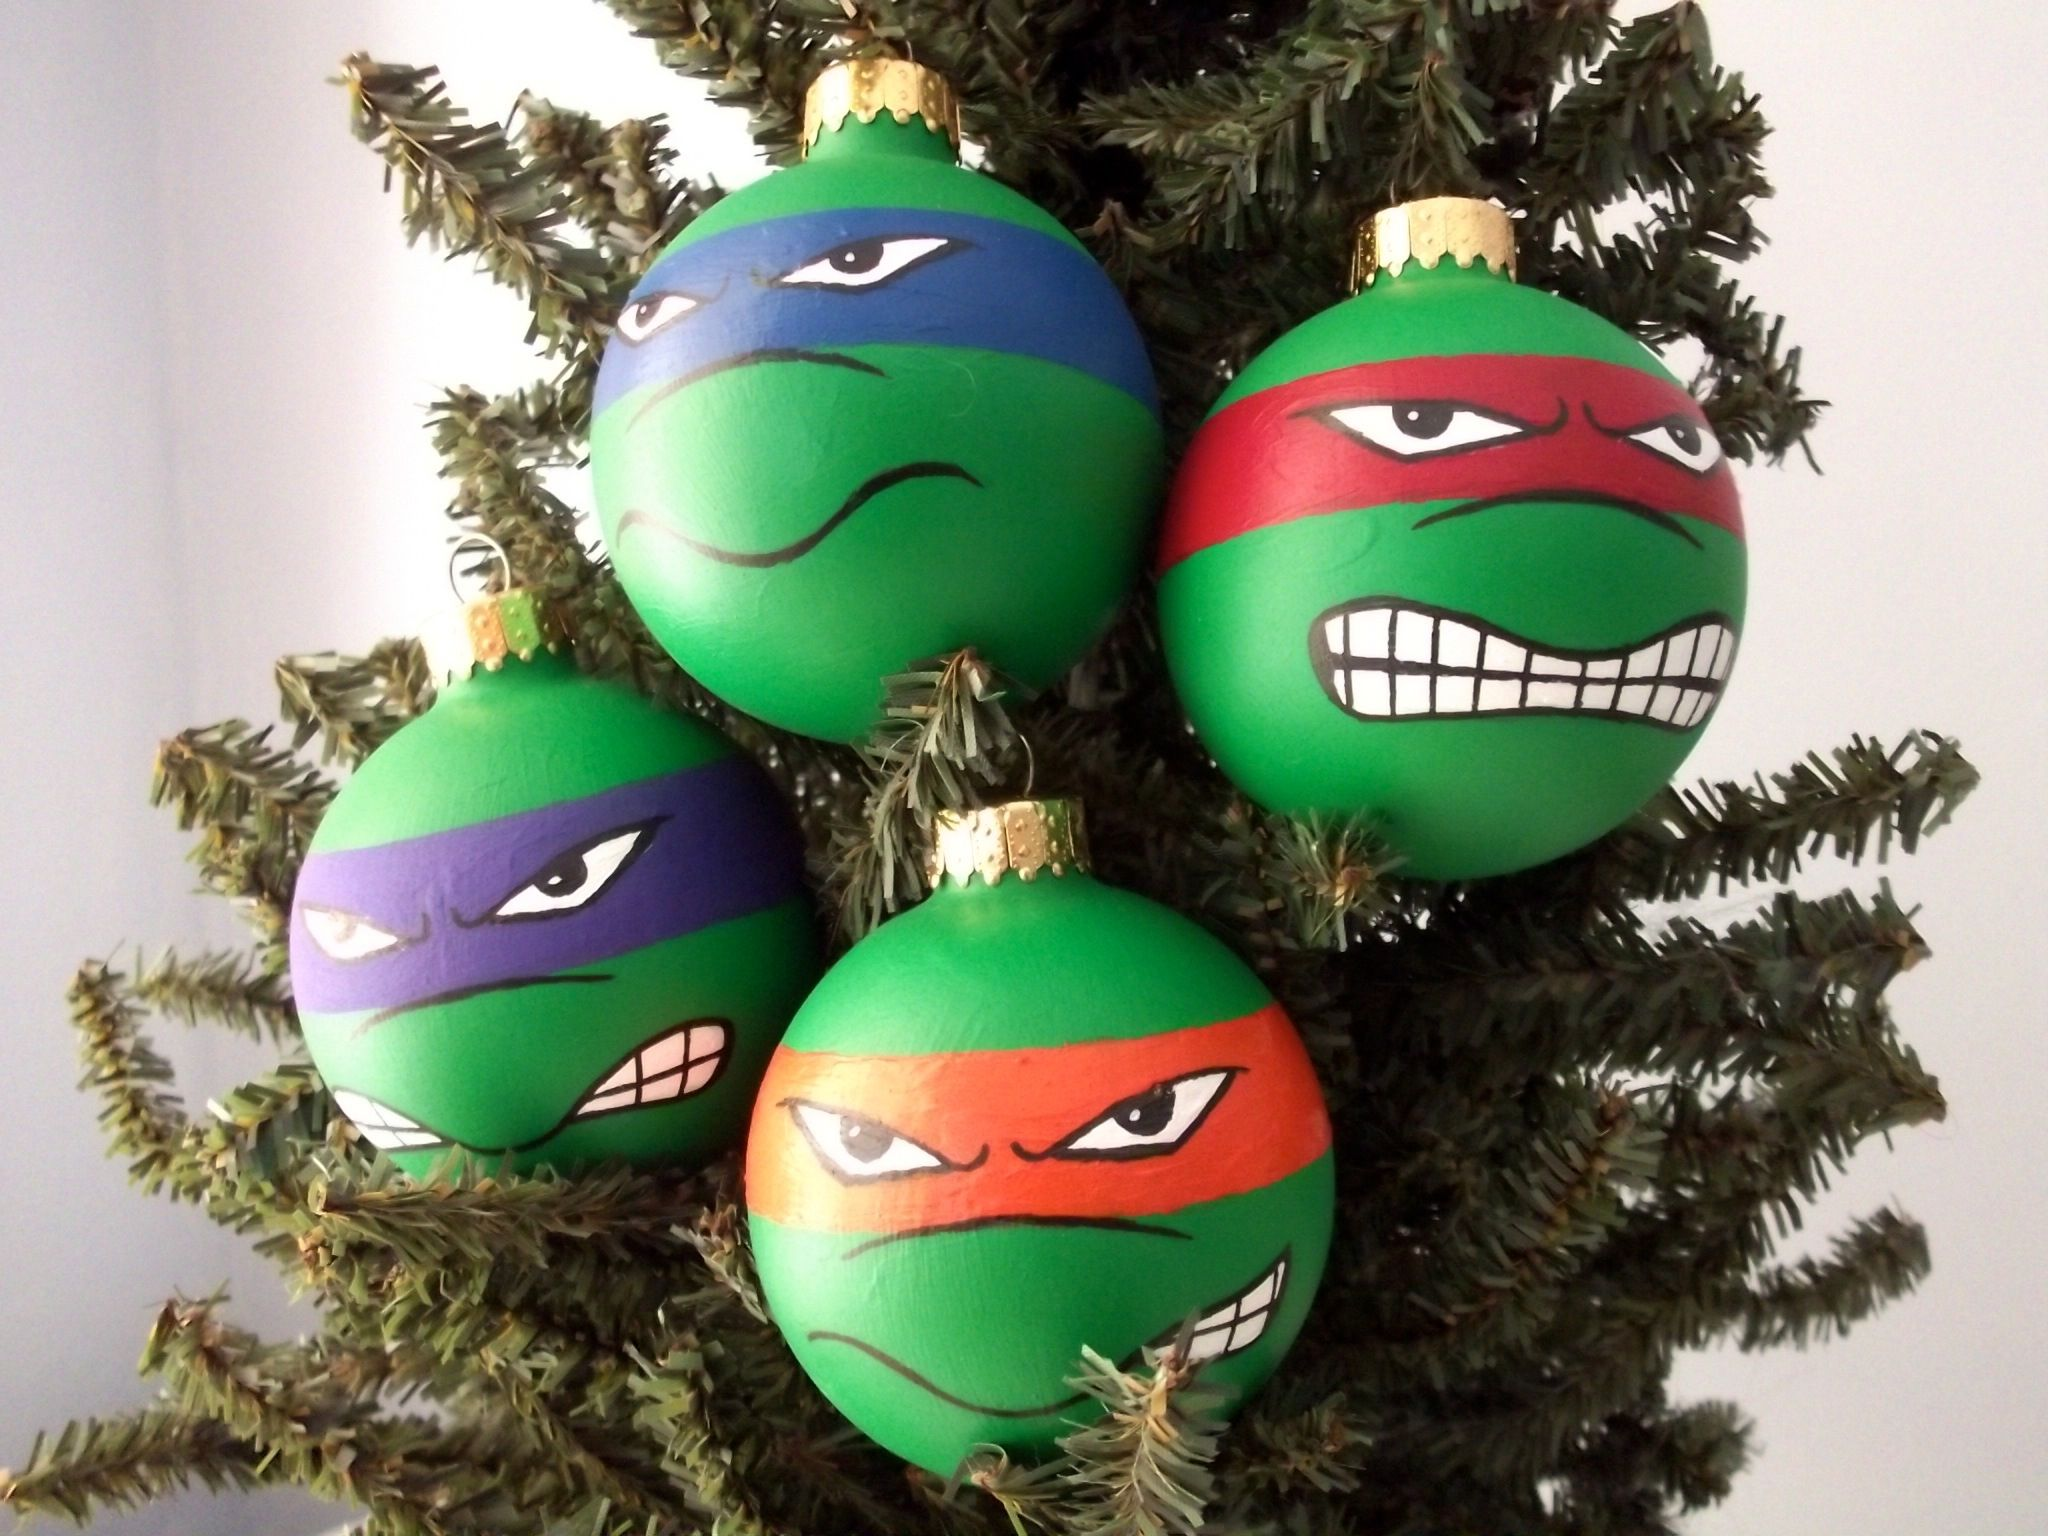 Uncategorized Christmas Ornament Painting cowabunga this is a hand painted holiday ornament set inspired by the teenage mutant ninja